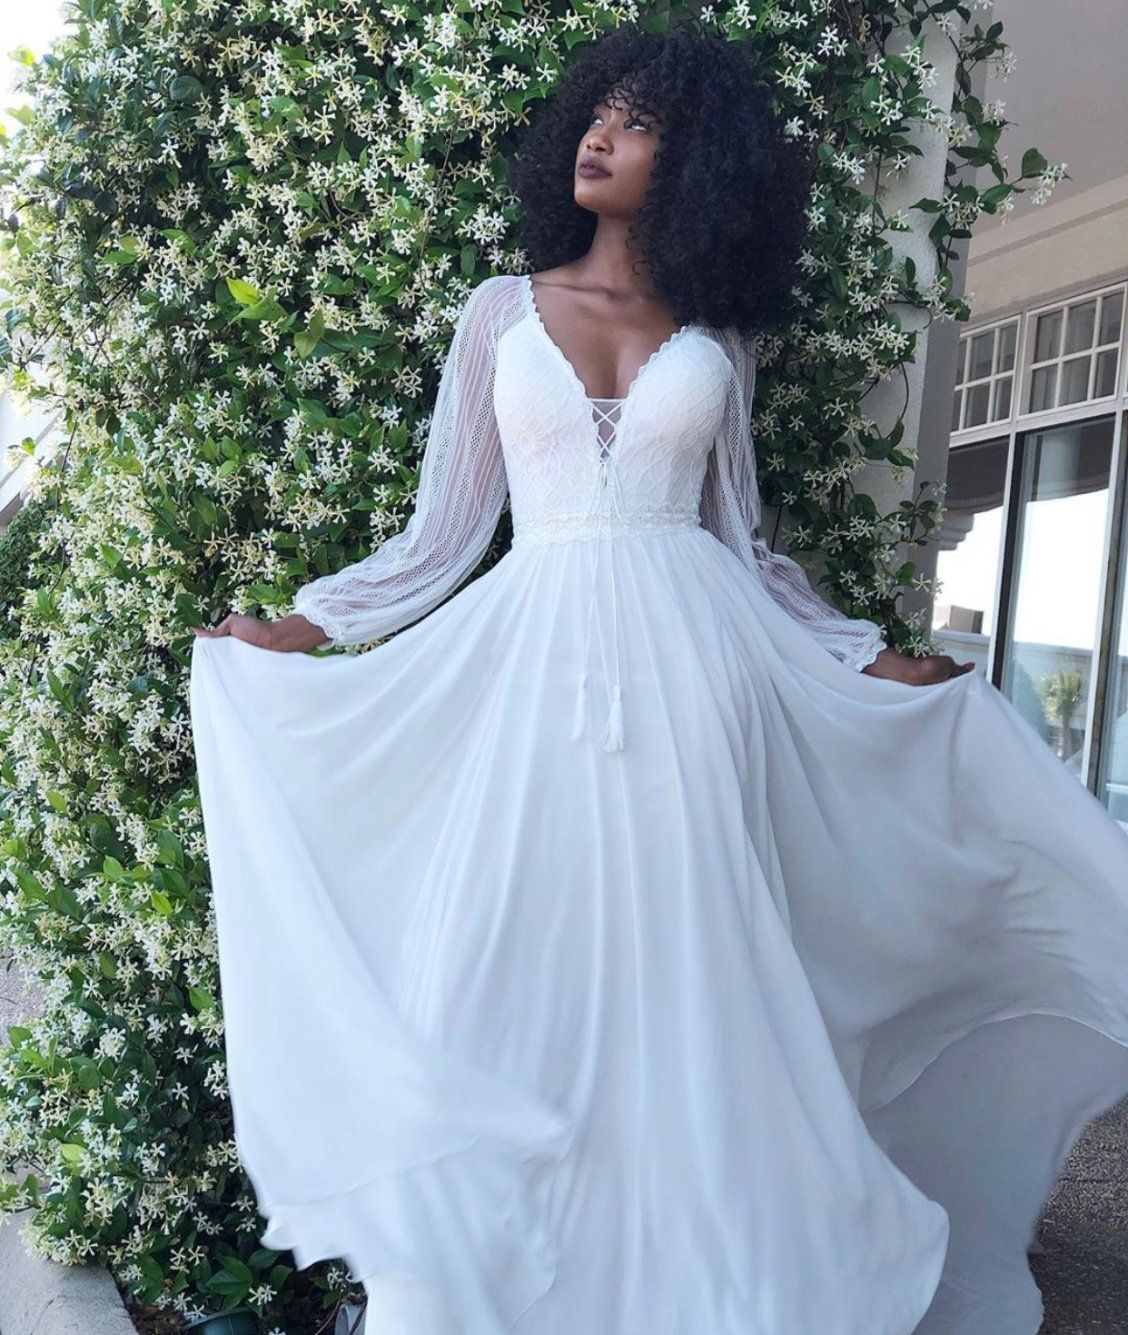 I Do I Do Wedding Gowns: The Wilderly Bride 'Harlow' Gown Captured By Studio I Do